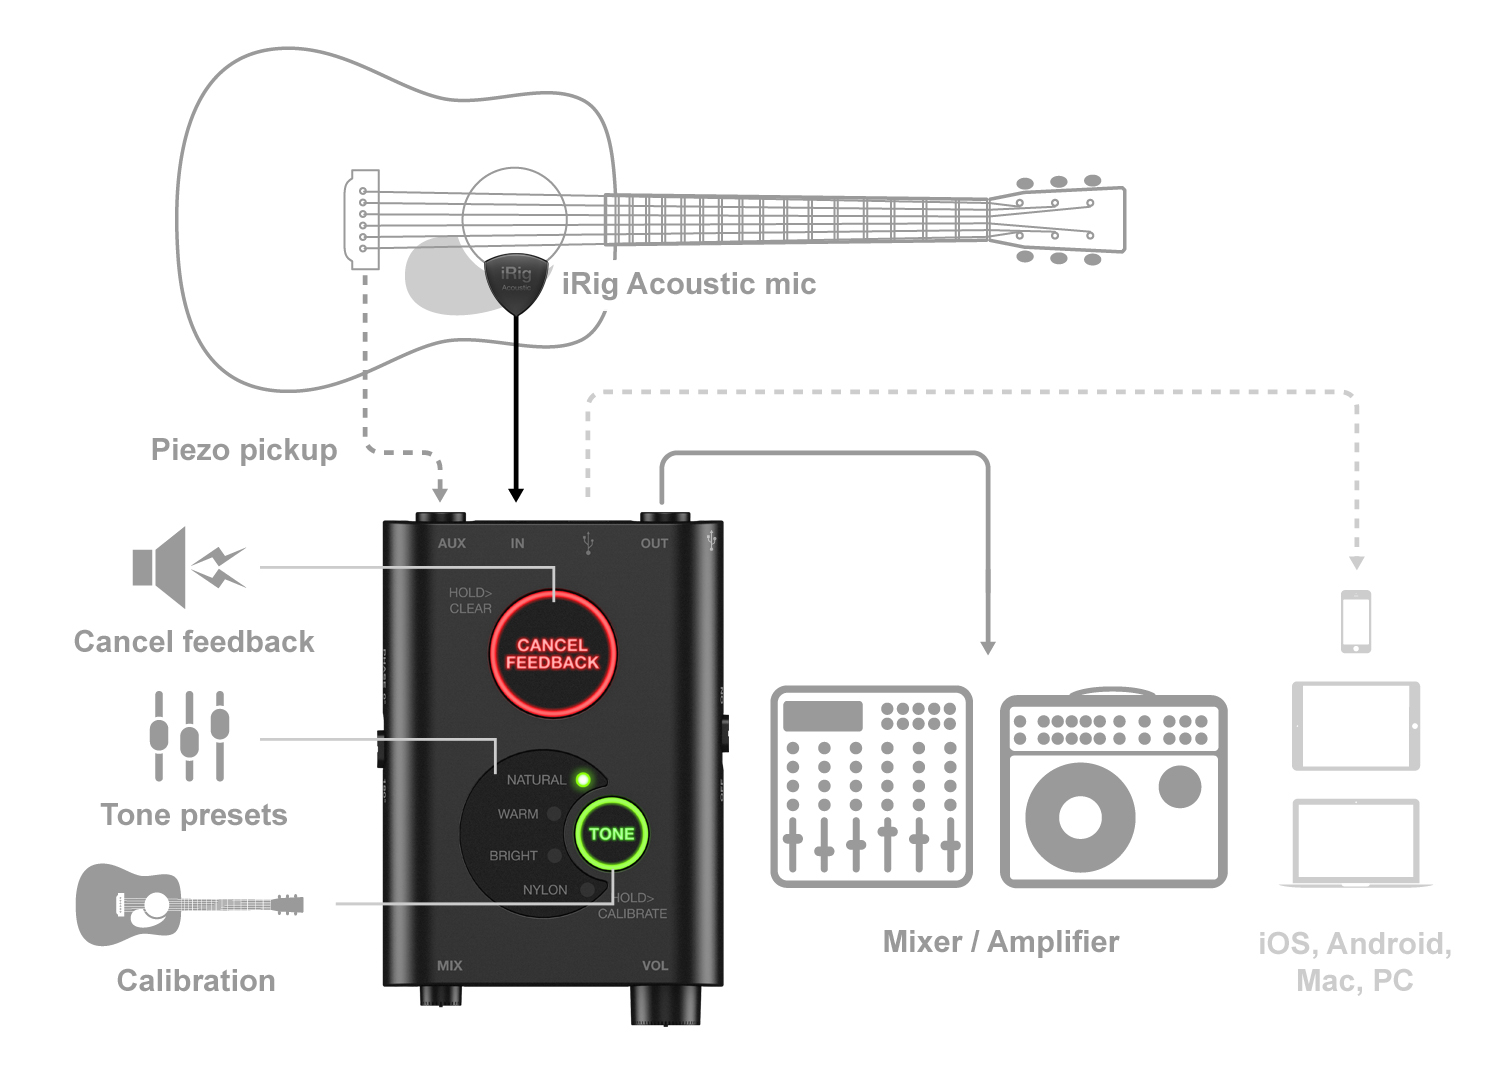 Recording Guitar Amp Diagram All Kind Of Wiring Diagrams Acoustic Pickup Circuit Using Tl071 In Garageband The Irig Stage Chalk G10 Wire Tube Schematics